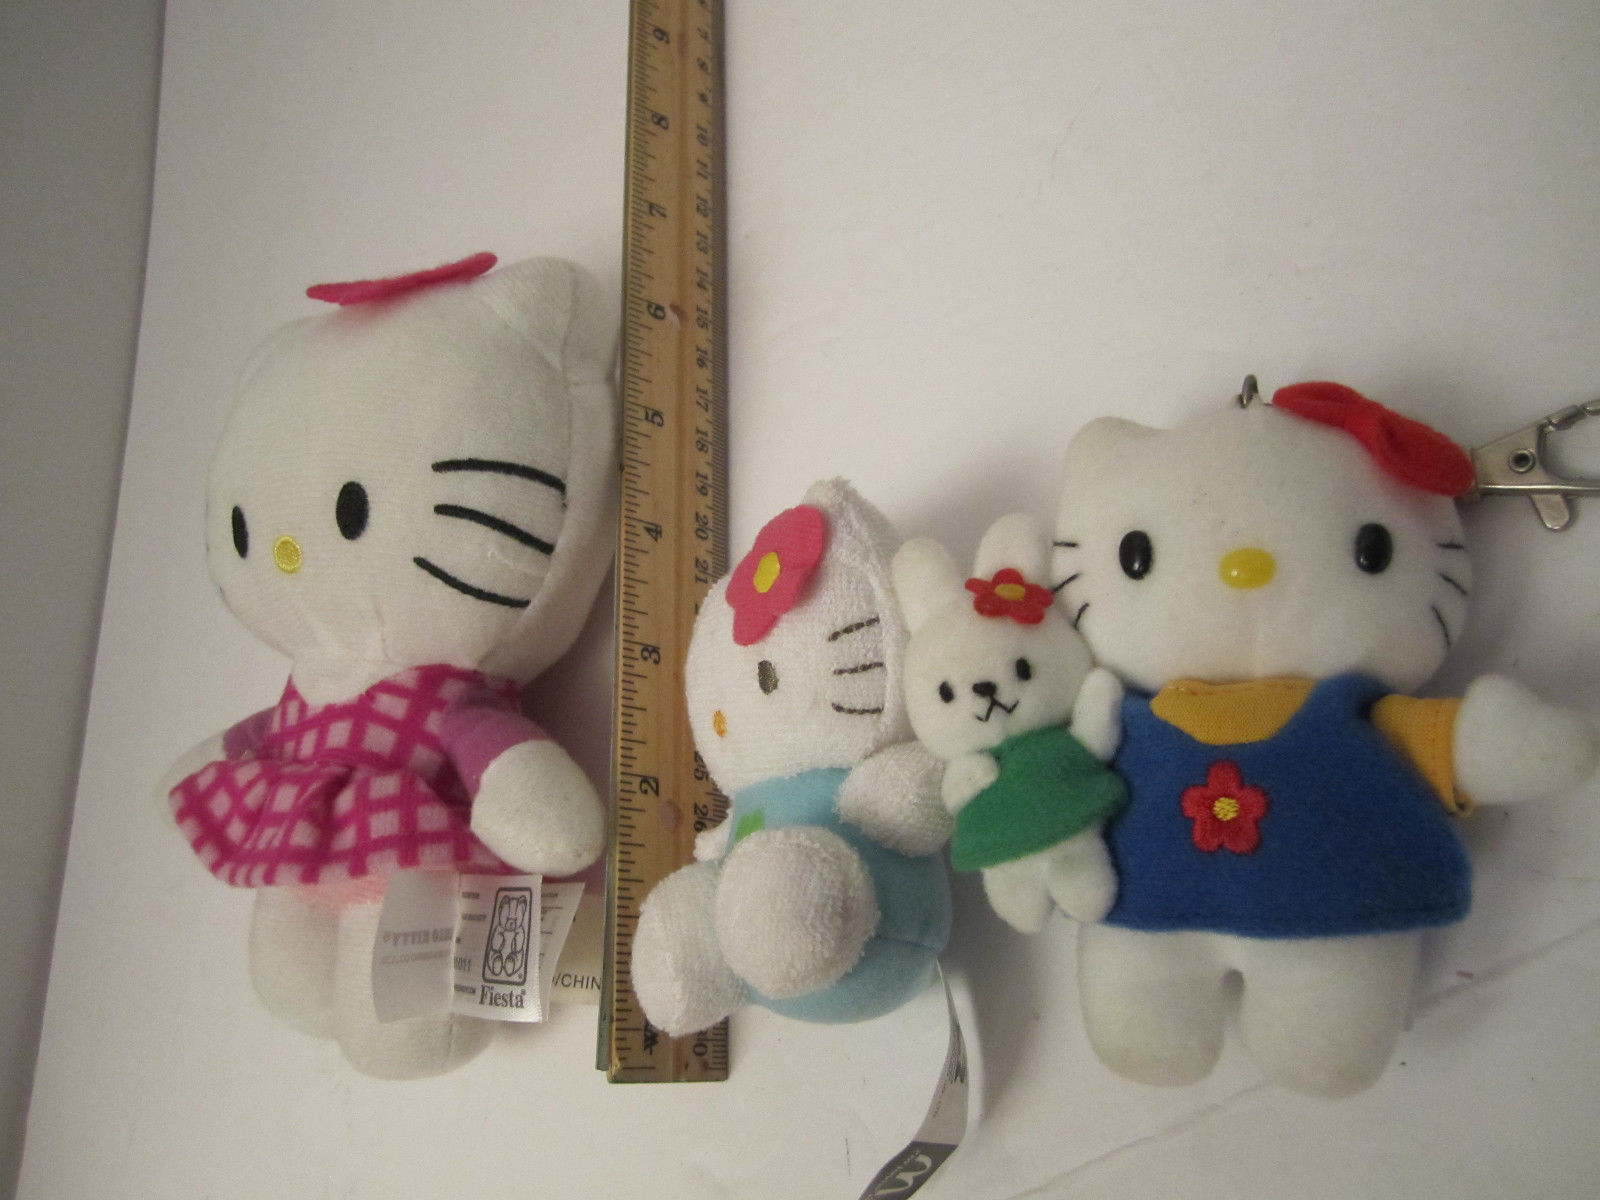 CUTE Trio of Small Plush Hello Kitty Sanrio Stuffed Cat Animal Toys NM Pre-Owned image 12